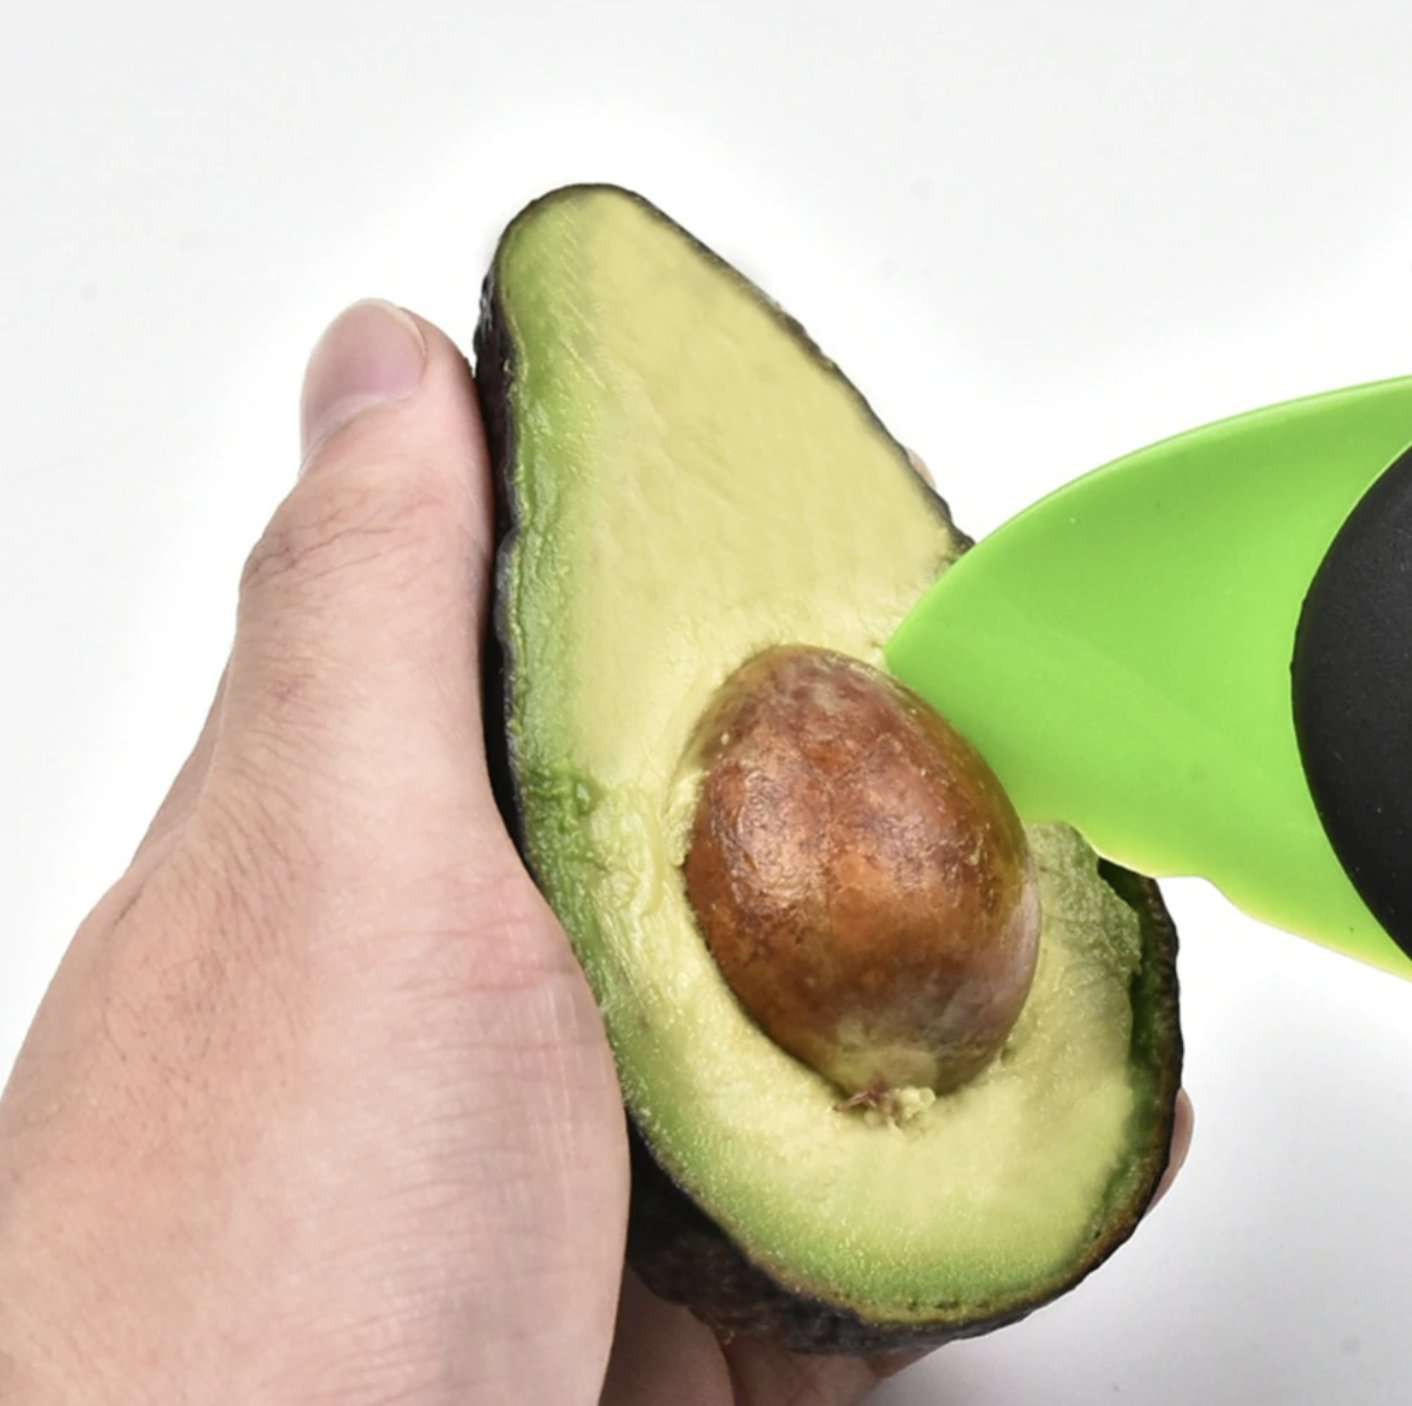 Ecosifu 3-in-1 Avocado Slicer Cutter Core Remover - Ecosifu